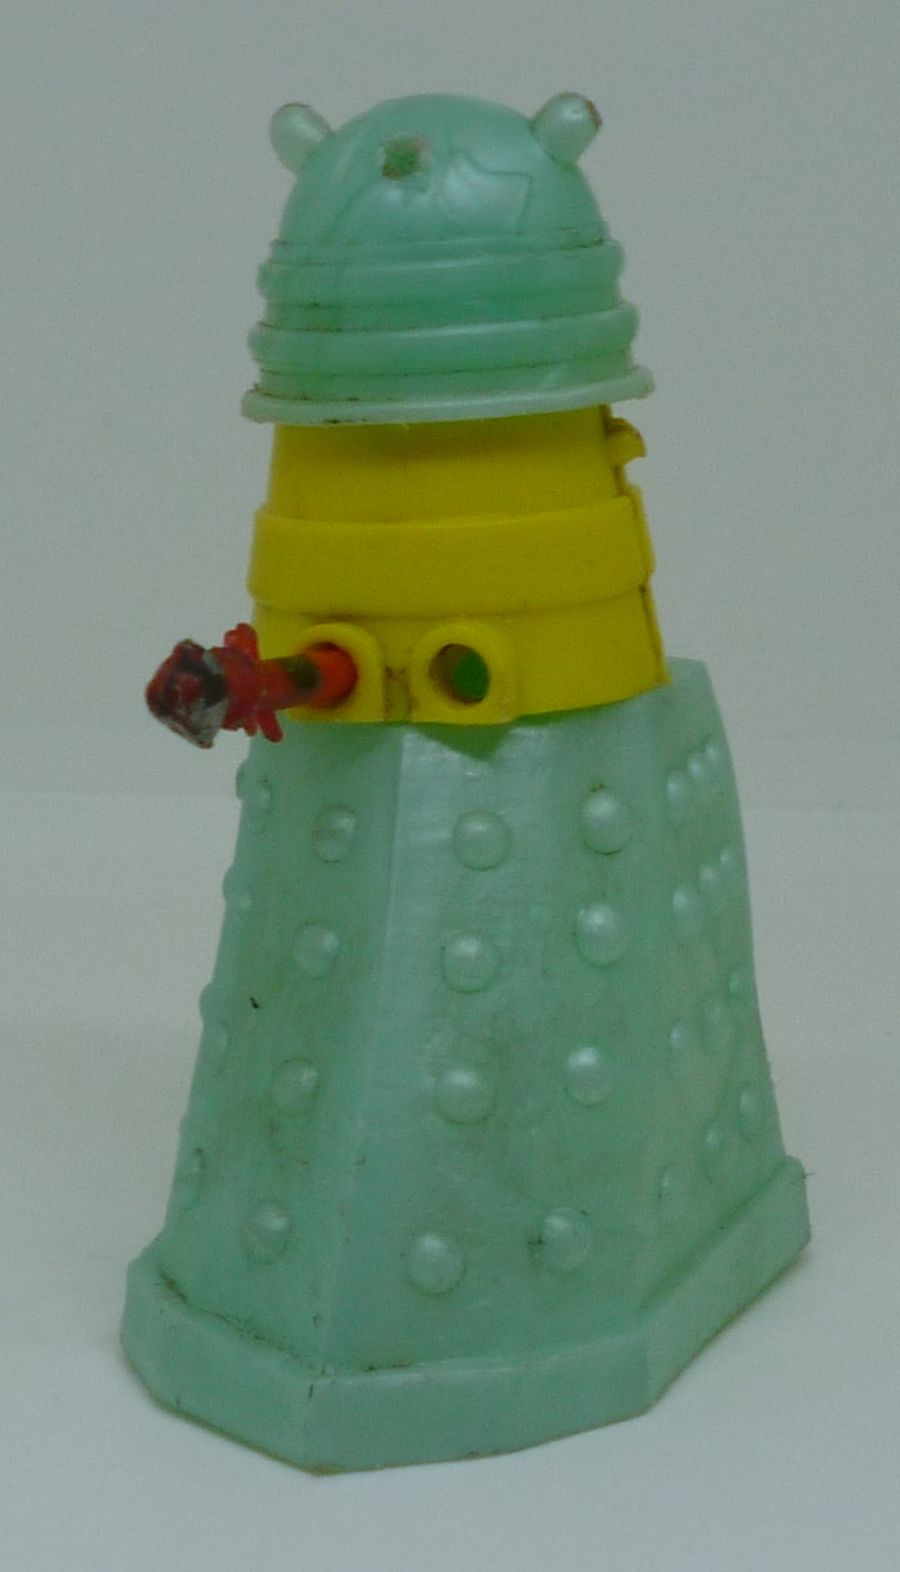 1965 Classic Doctor Who Cherilea Swappit Turquoise Green Dalek